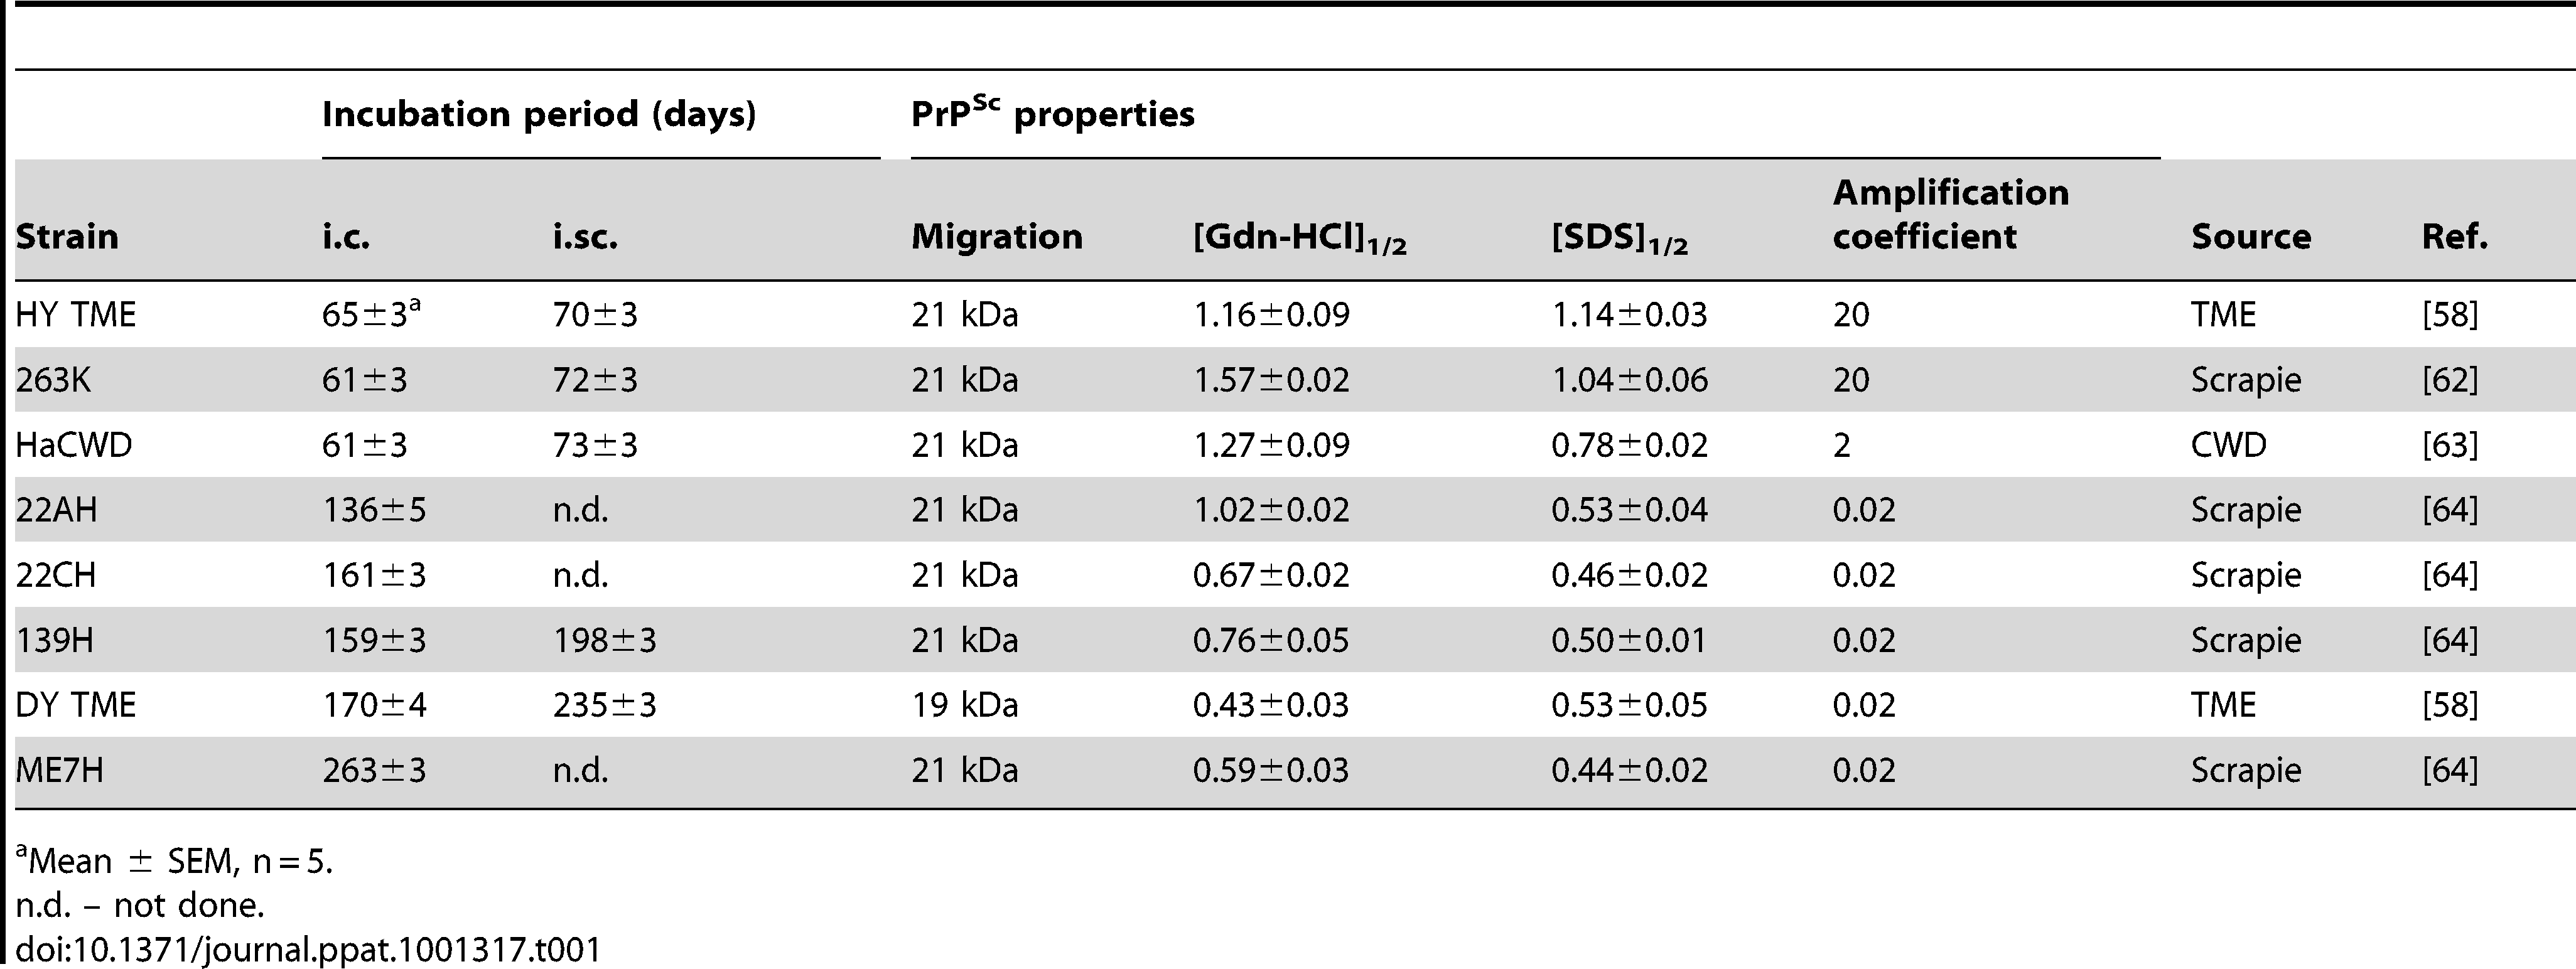 Properties of hamster-adapted prion strains.